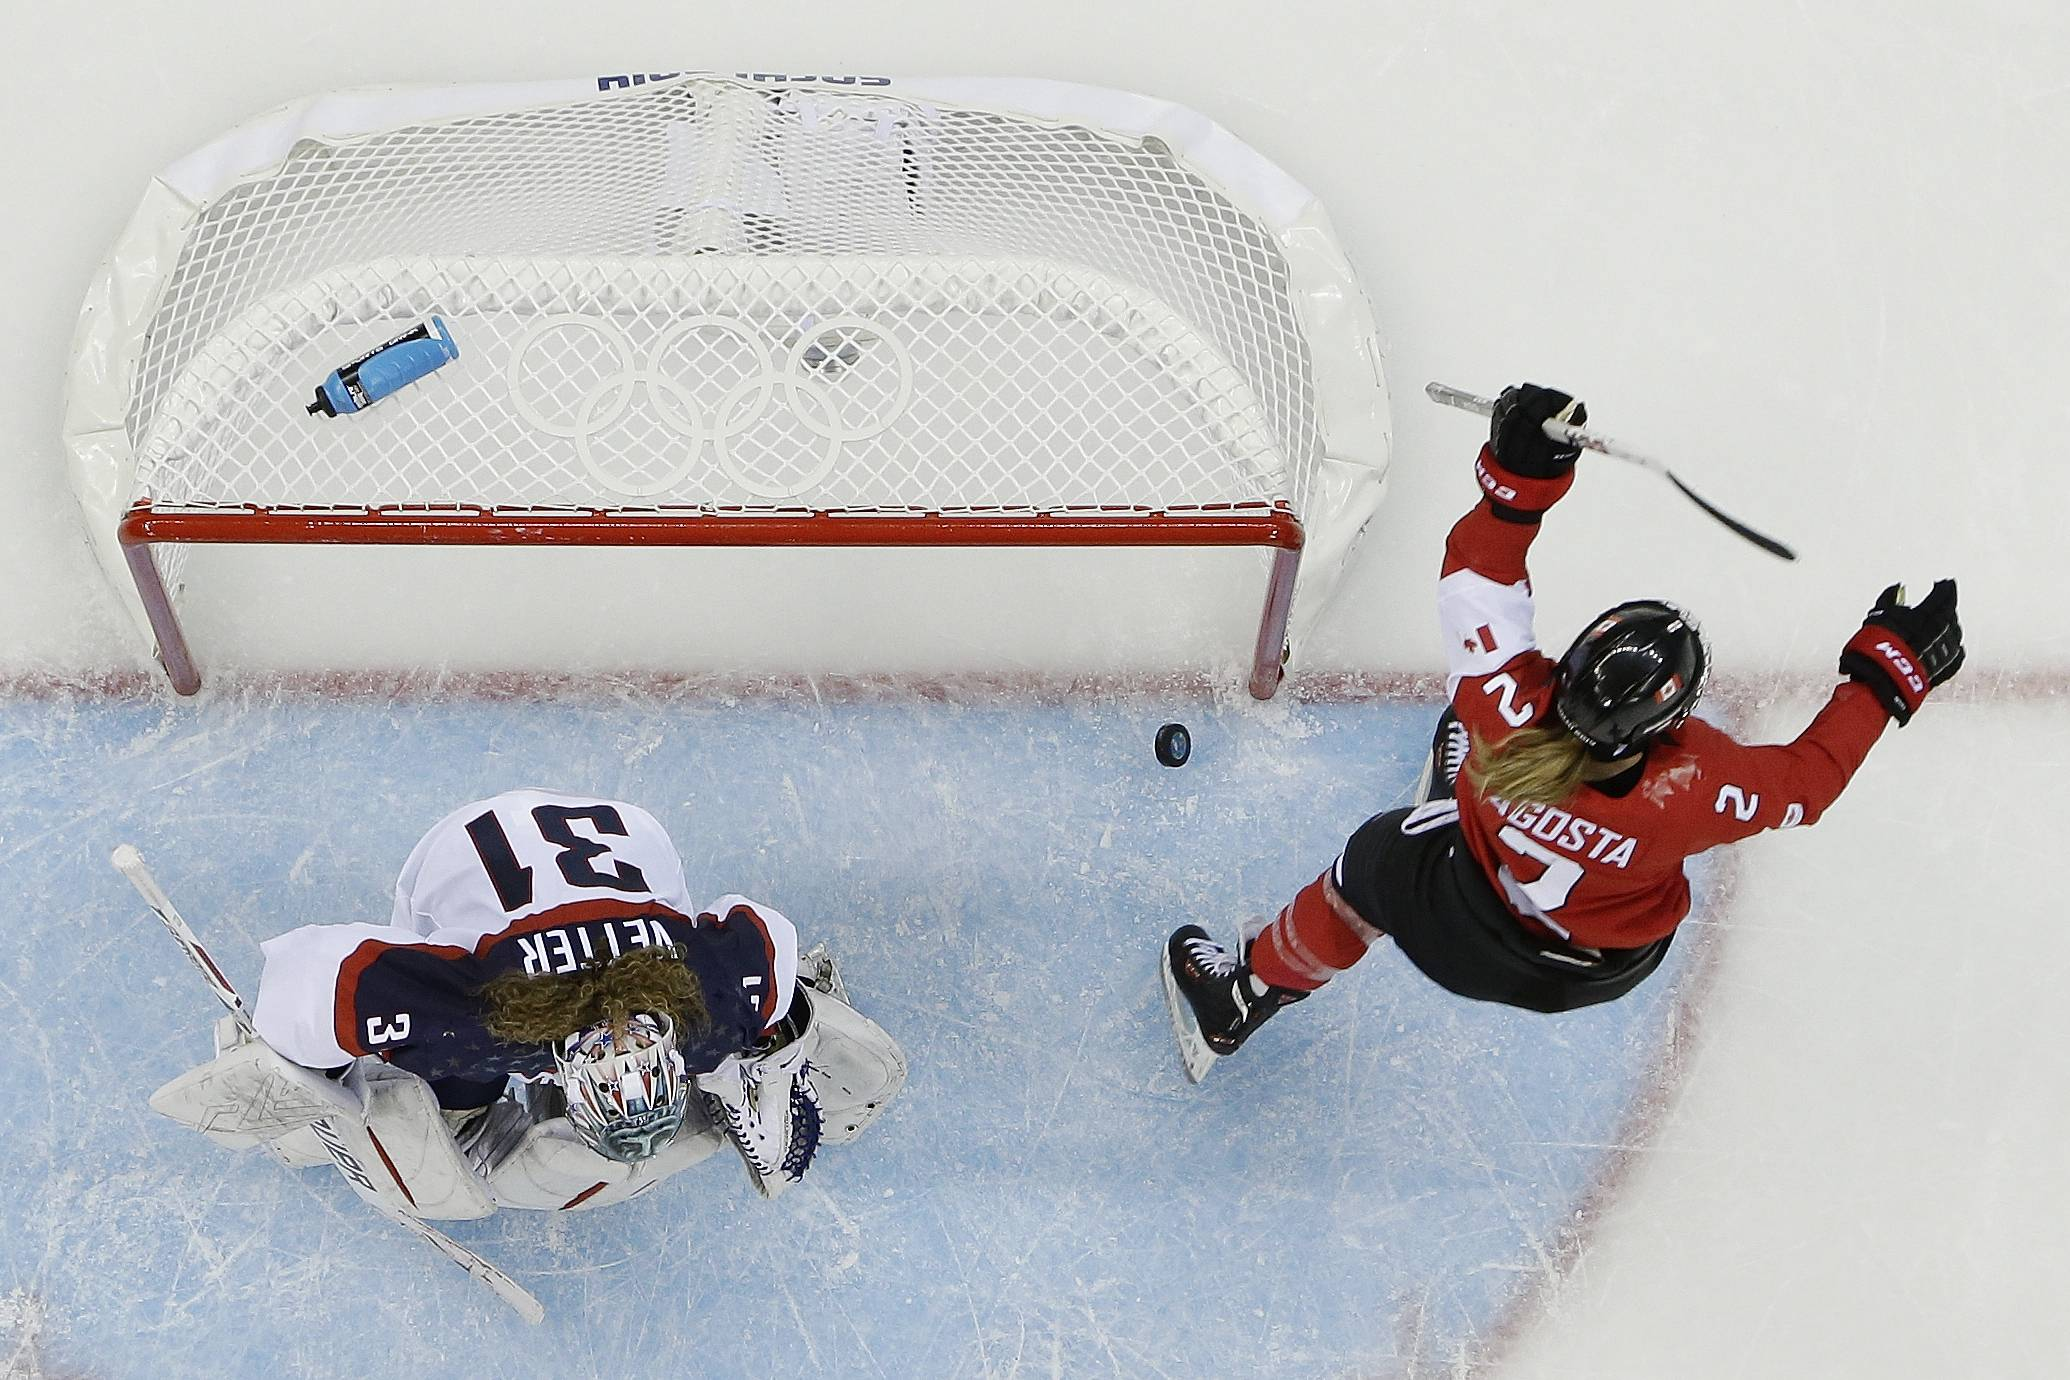 Meghan Agosta-Marciano of Canada celebrates her goal as USA Goalkeeper Jessie Vetter looks down at the ice in the third period of the 2014 Winter Olympics women's ice hockey game at Shayba Arena, Wednesday, Feb. 12, 2014, in Sochi, Russia. Canada defeated the United States 3-2.